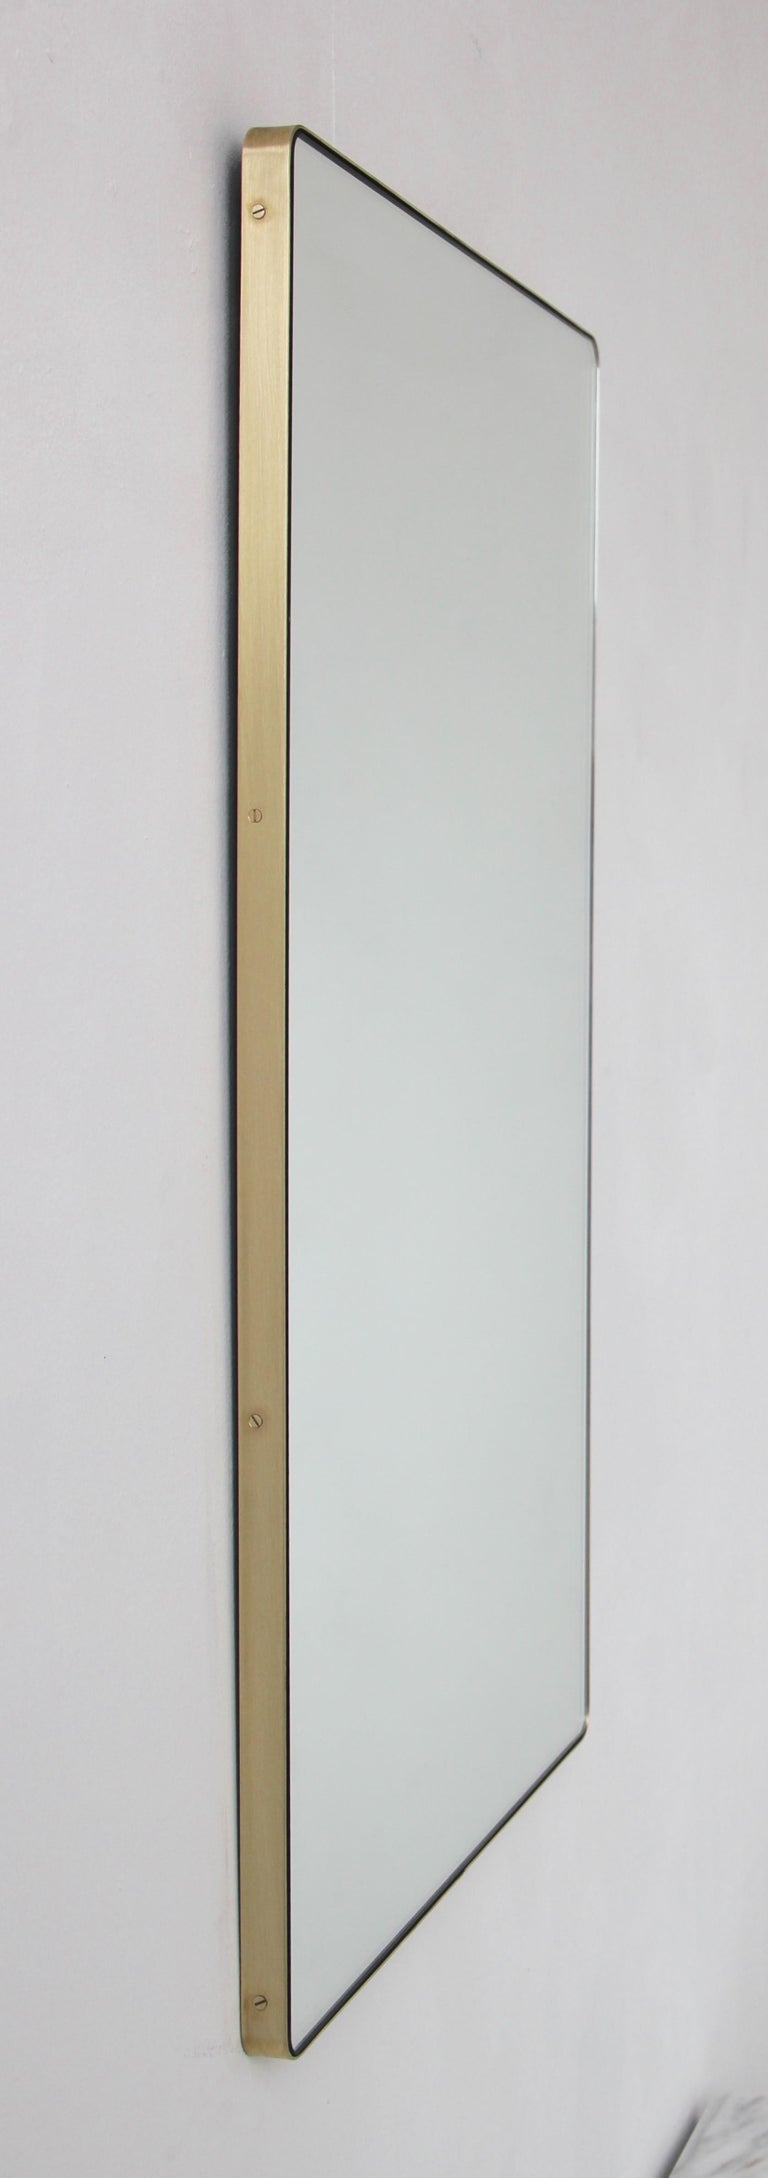 Organic Modern Modern Silver Quadris Rectangular Wall Mirror with Brass Frame For Sale